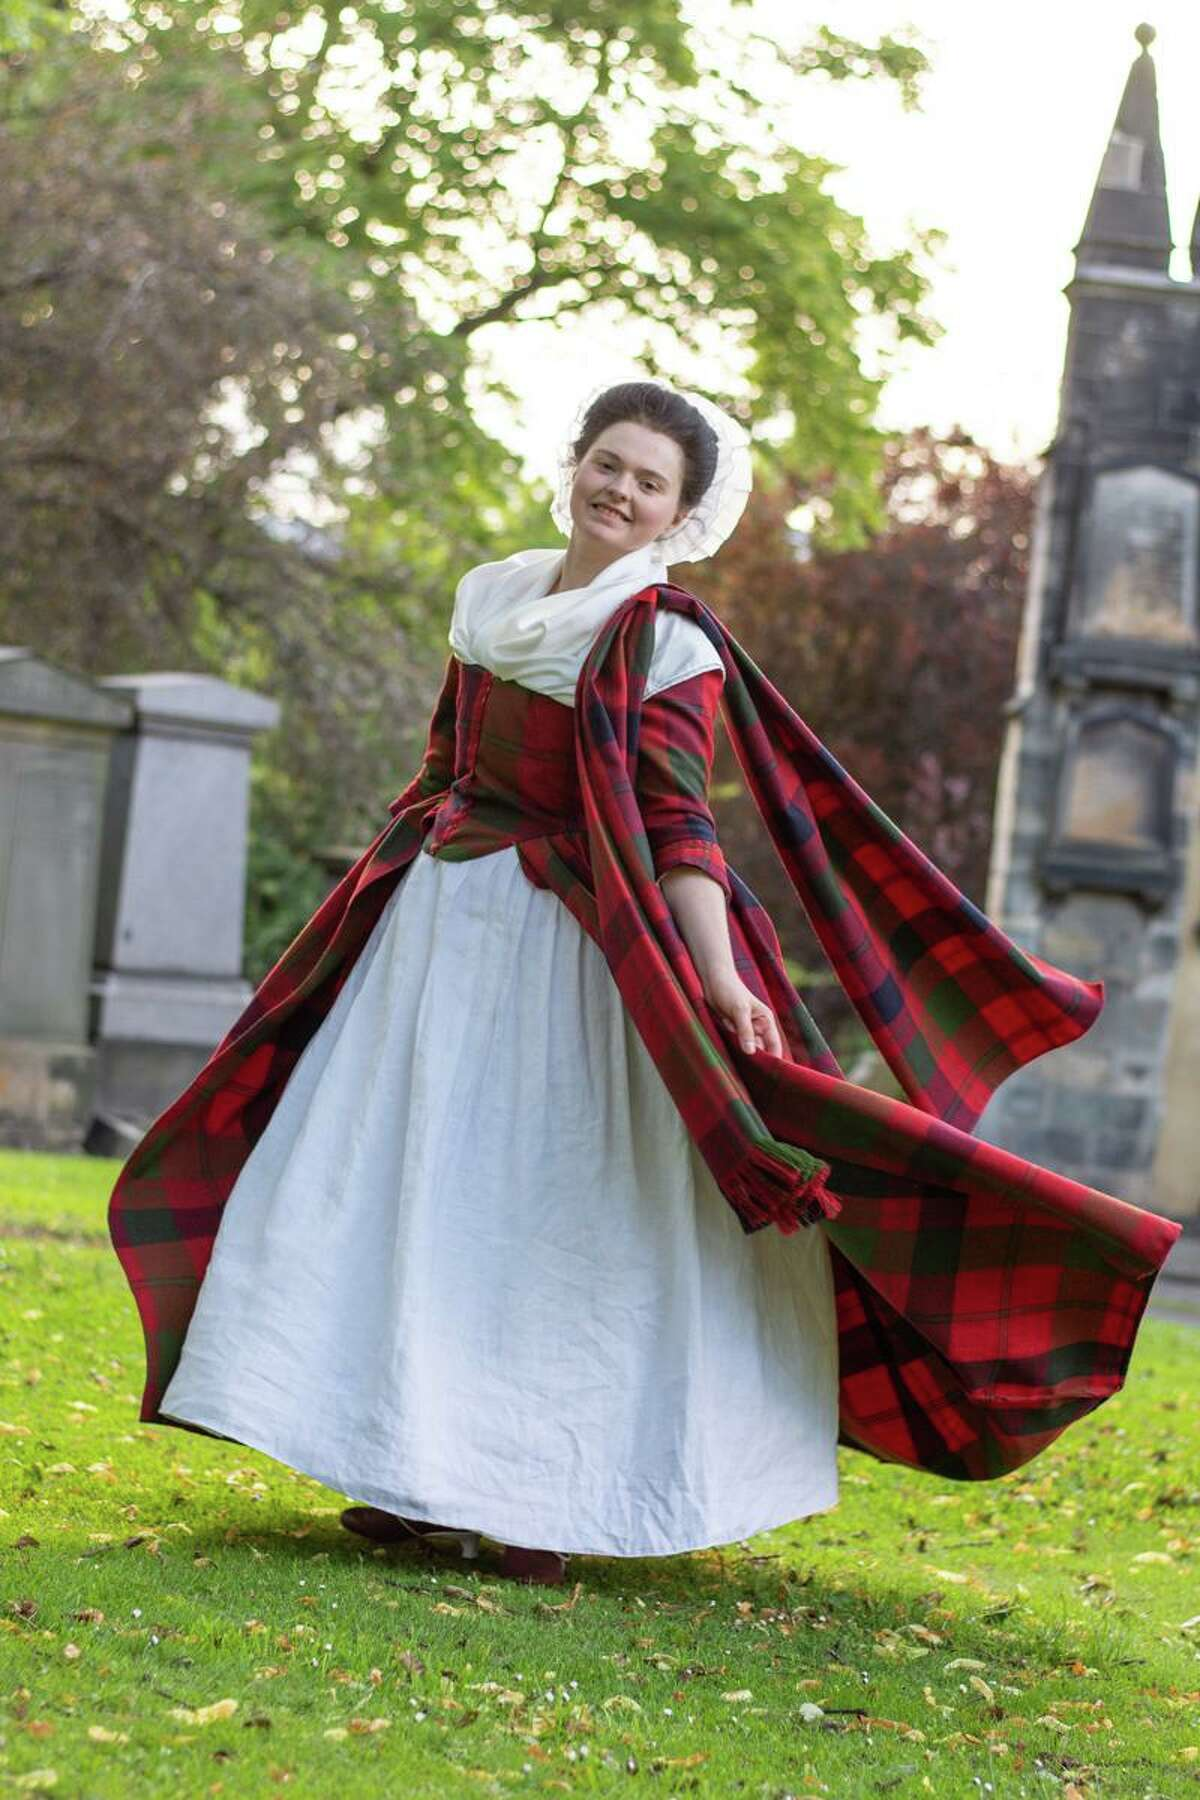 A woman models a re-creation of the Isabella MacTavish Fraser wedding dress by Rebecca Olds, maker of reconstructed clothing of the 18th-century for film and reenactments.